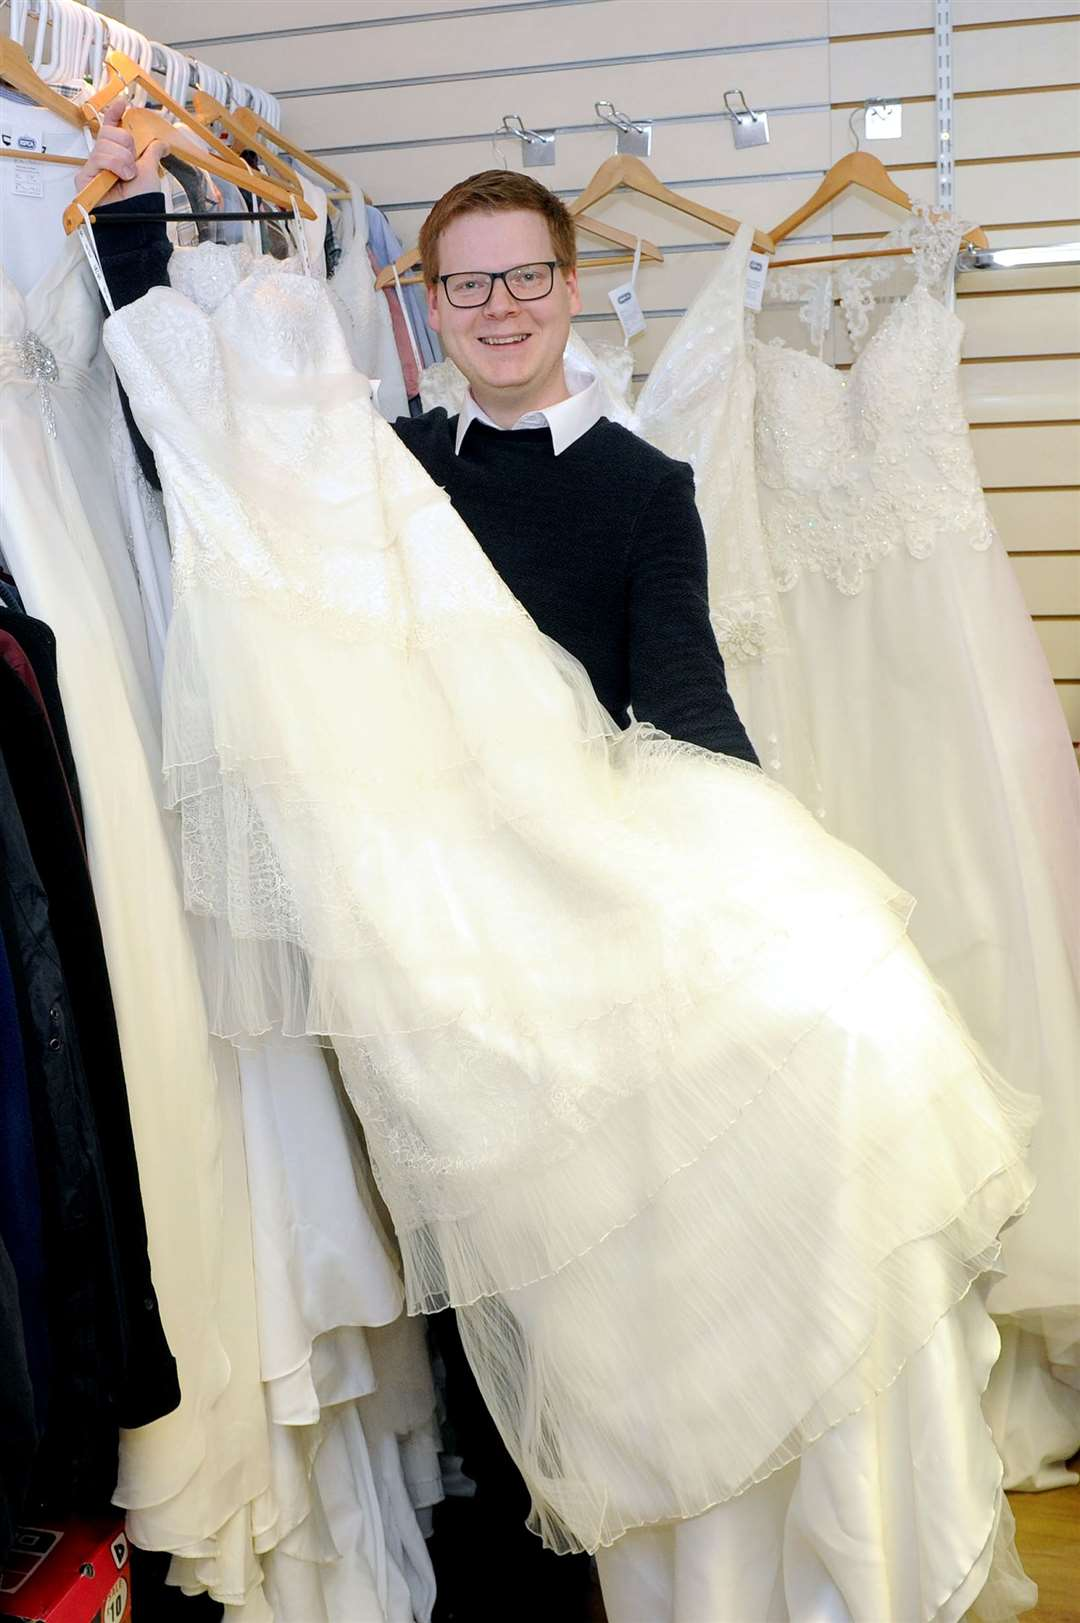 Ray Sinclair, shop manager surrounded by the wedding dressed which have been donated. Picture by Mecha Morton.